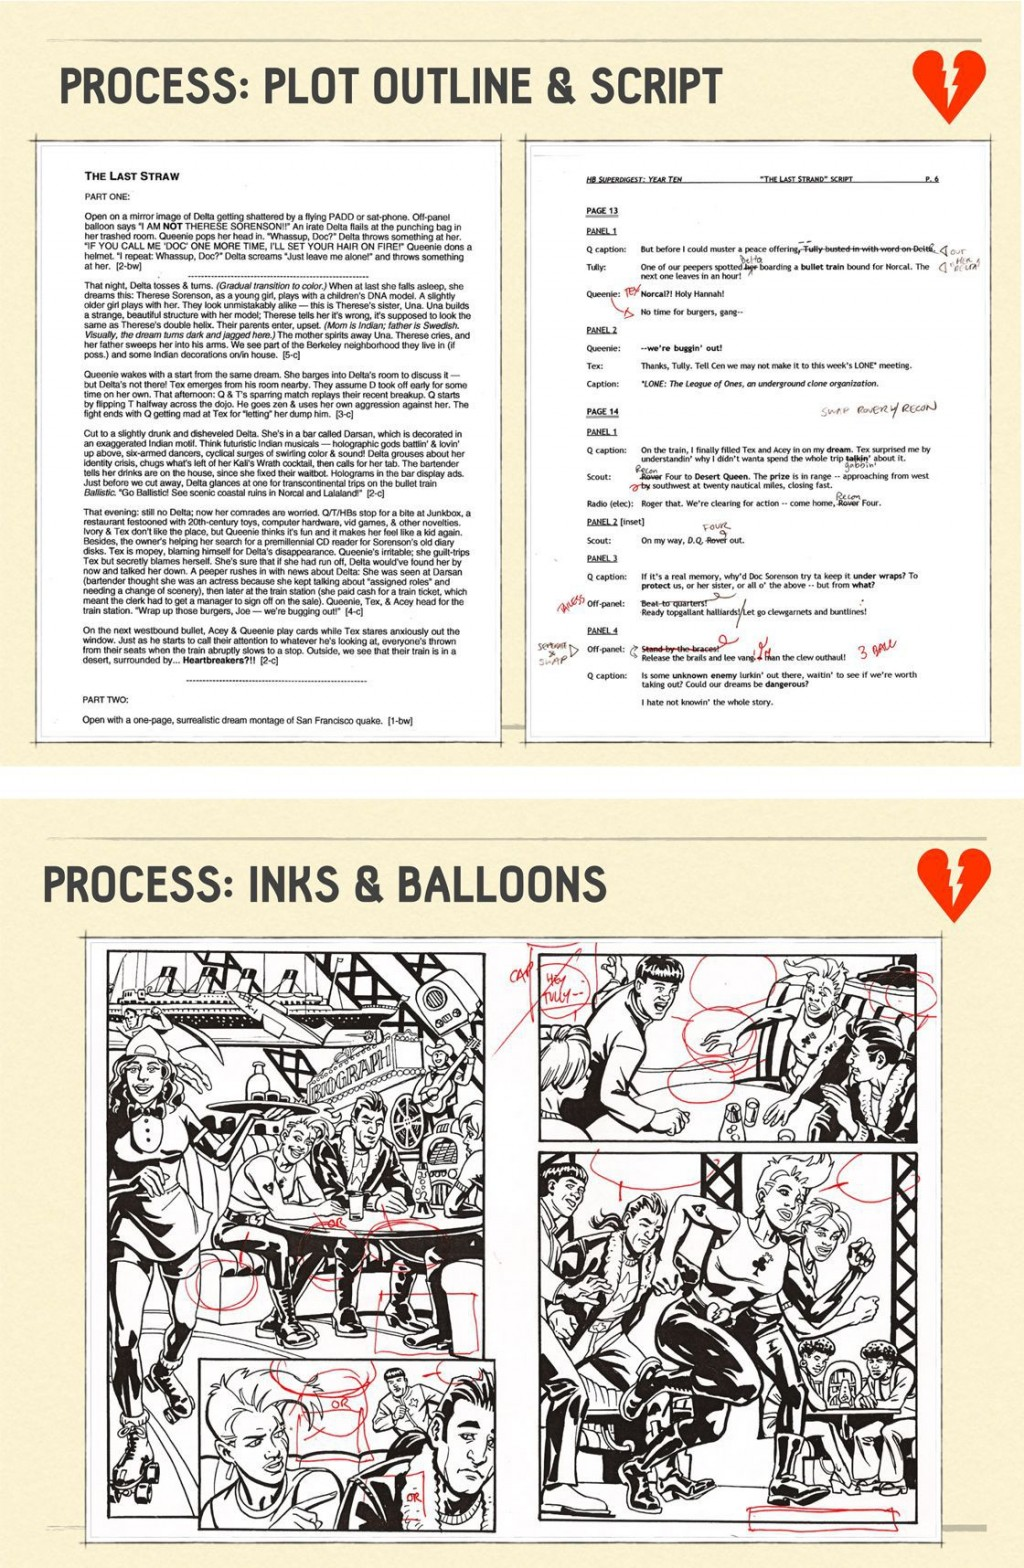 001 Marvelou Comic Book Script Writing Format Concept  ExampleLarge